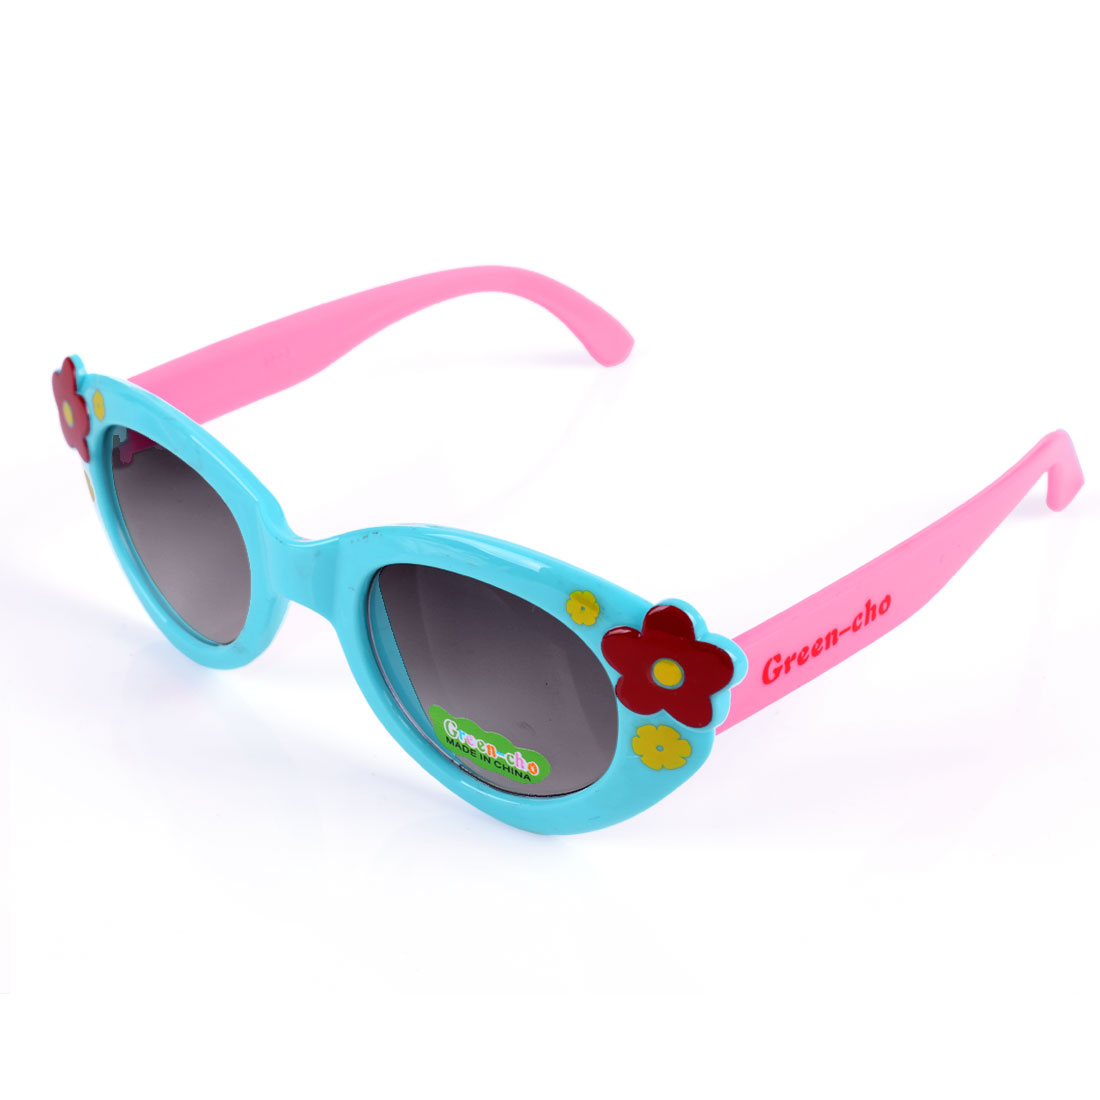 Girls Plastic Floral Pattern Splice Sunglasses Light Blue Pink